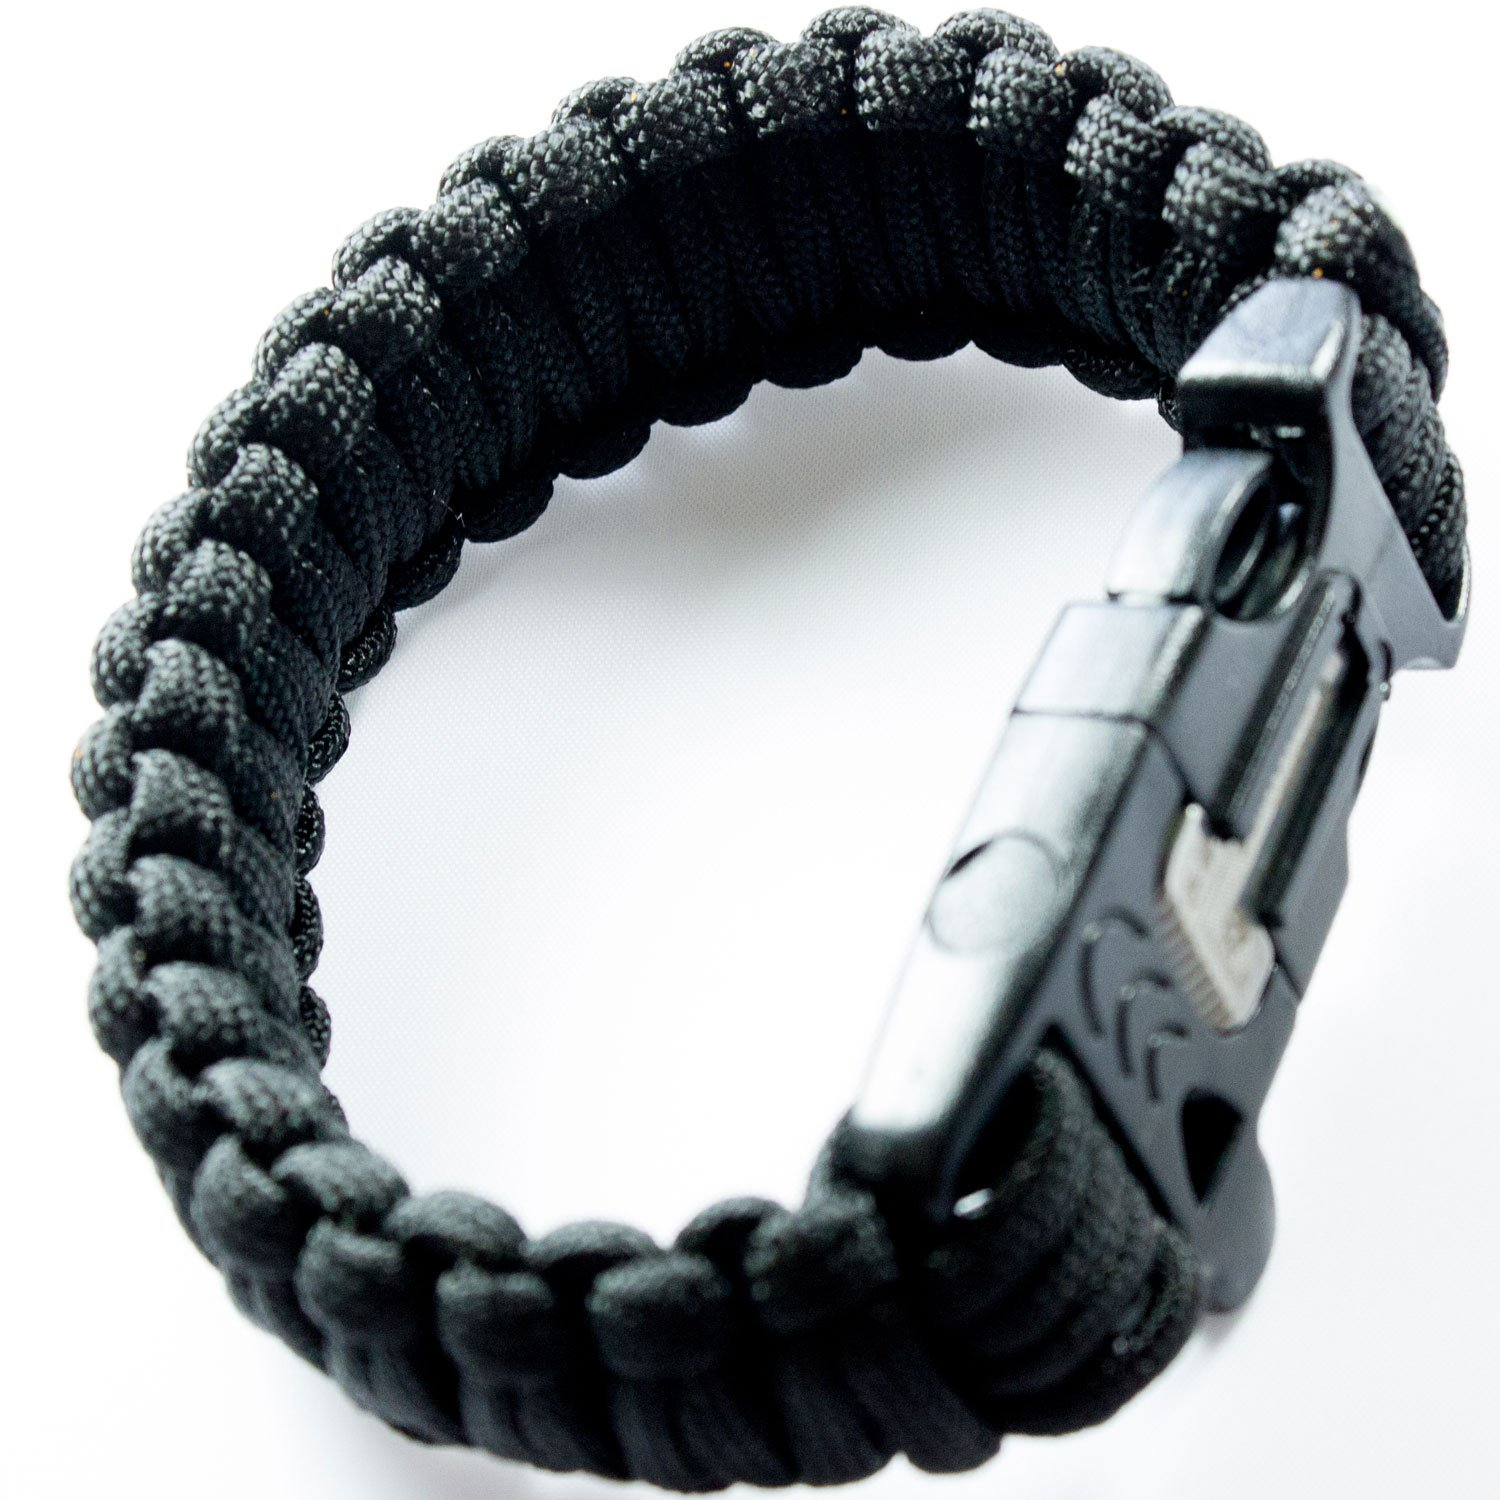 Best Black 550 Paracord Bracelet for Survival & Camping - Includes Built-in Emergency Whistle & Firestarter! & 100% Guaranteed!